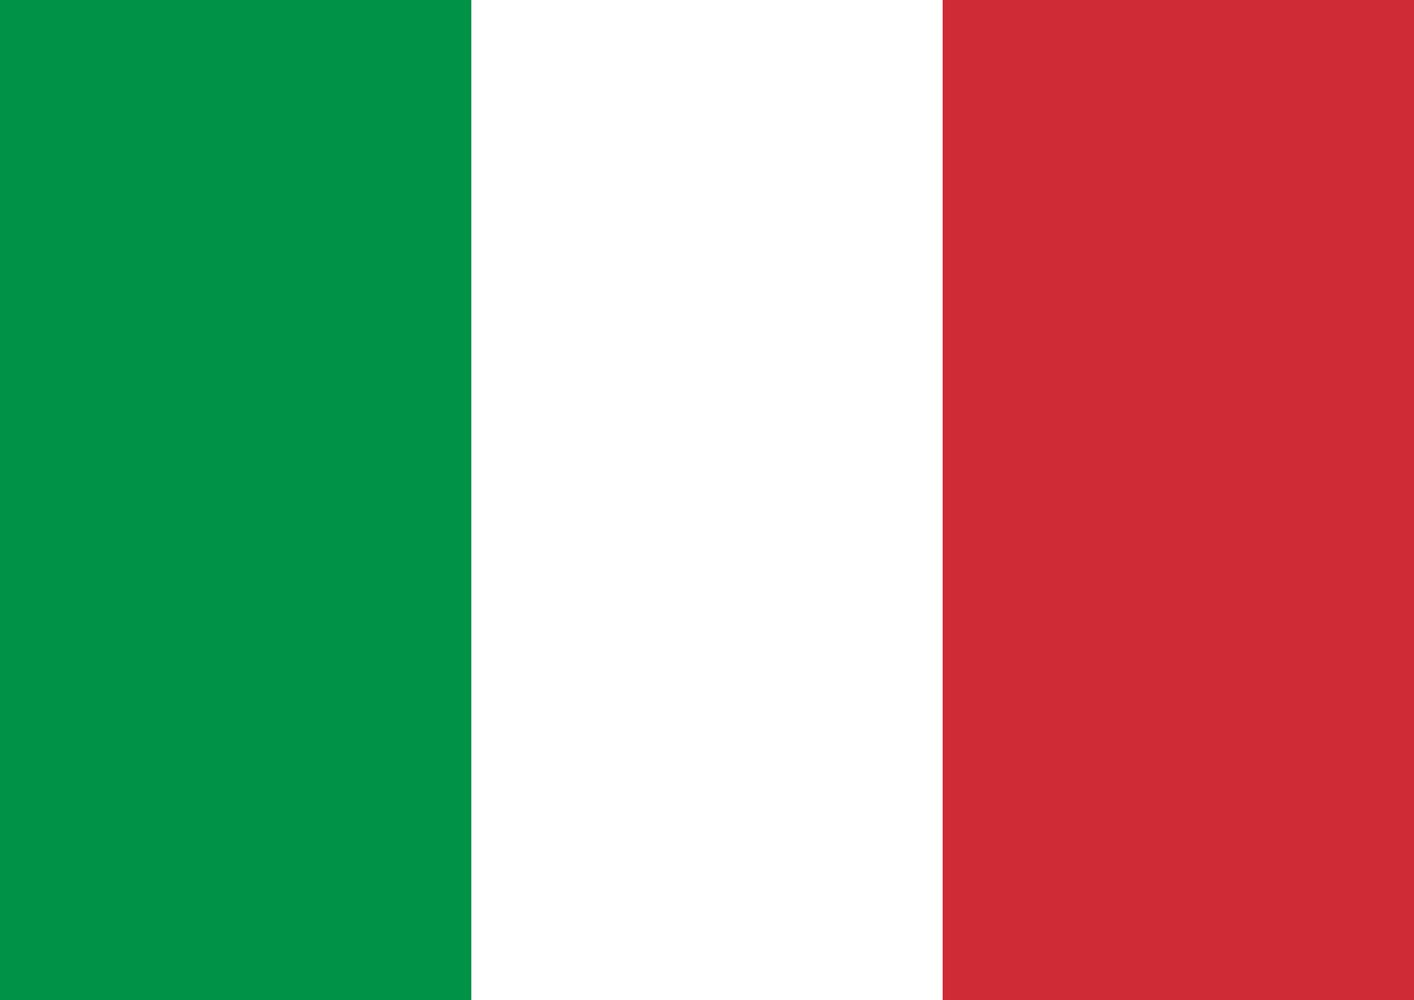 Toland Home Garden Flag of Italy 12.5 x 18 Inch Decorative Country Nation Garden Flag